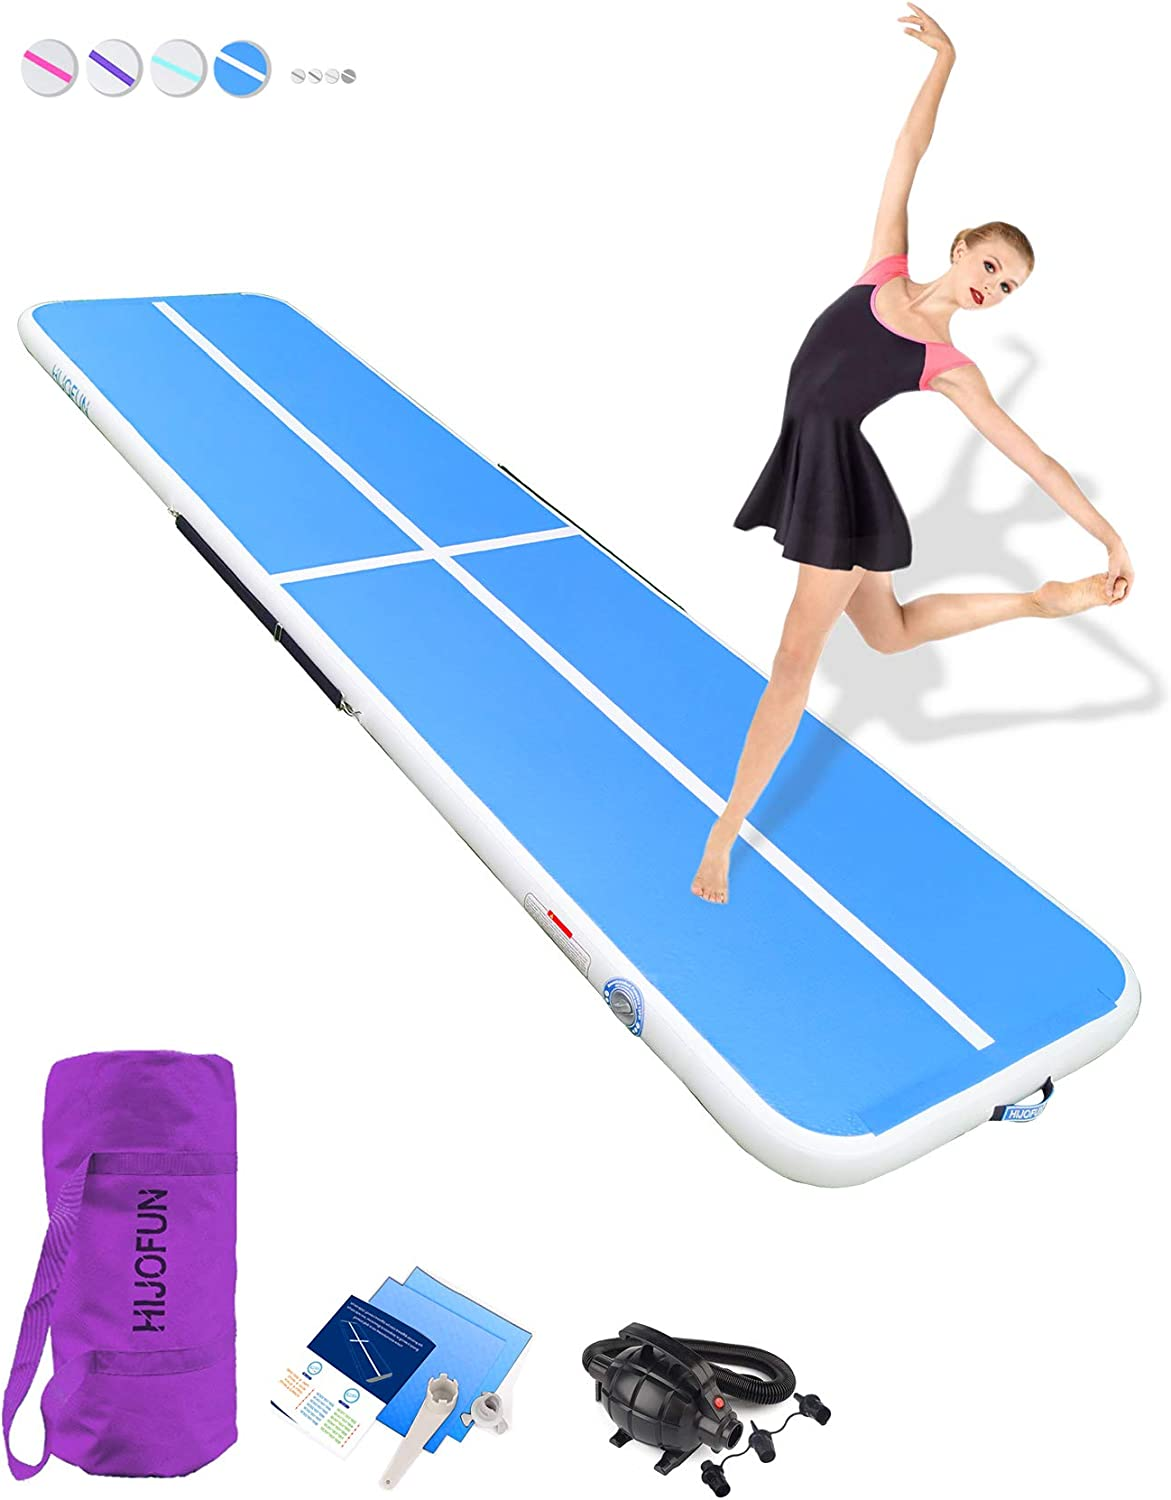 HIJOFUN Premium Air Track 10ft 13ft 16ft 20ft Airtrack Gymnastics Tumbling Mat Inflatable Tumble Track with Electric Air Pump for Home Use/Gym/Yoga/Training/Cheerleading/Outdoor/Beach/Park : Sports & Outdoors